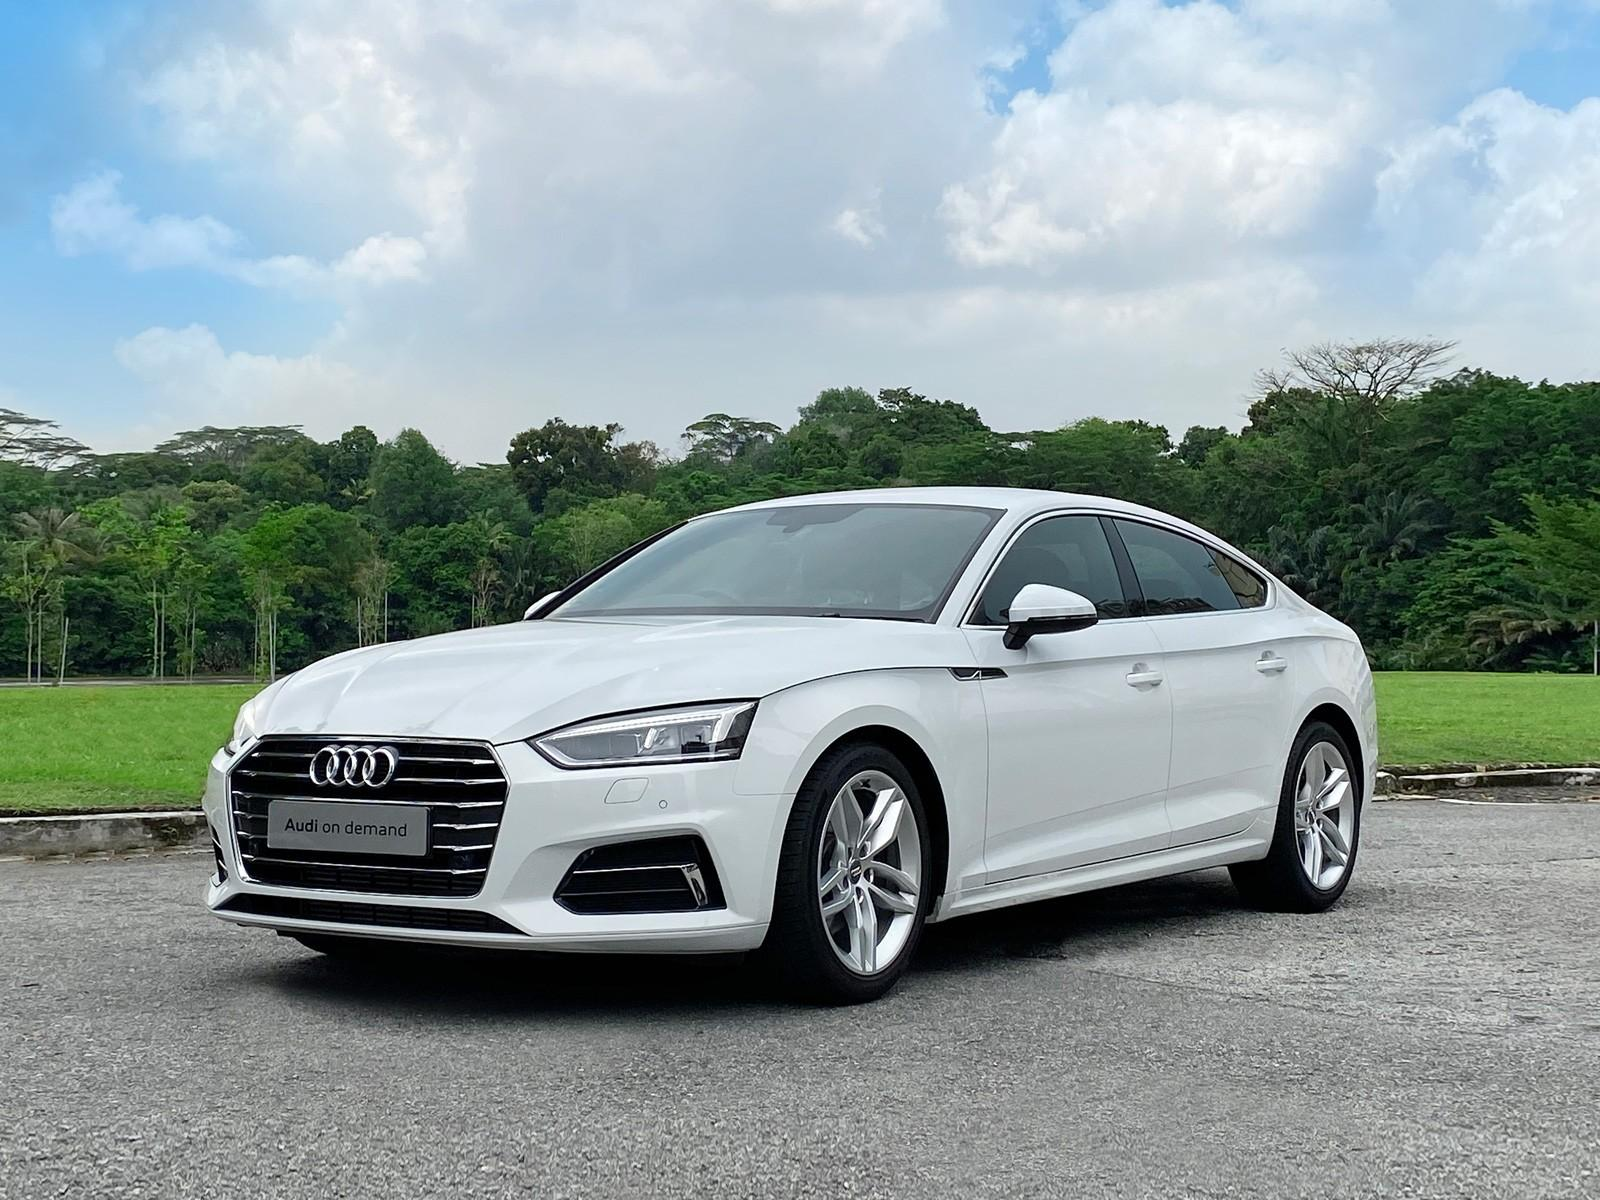 Audi A5 Sportback 2.0 TFSI S Tronic (For Rent)